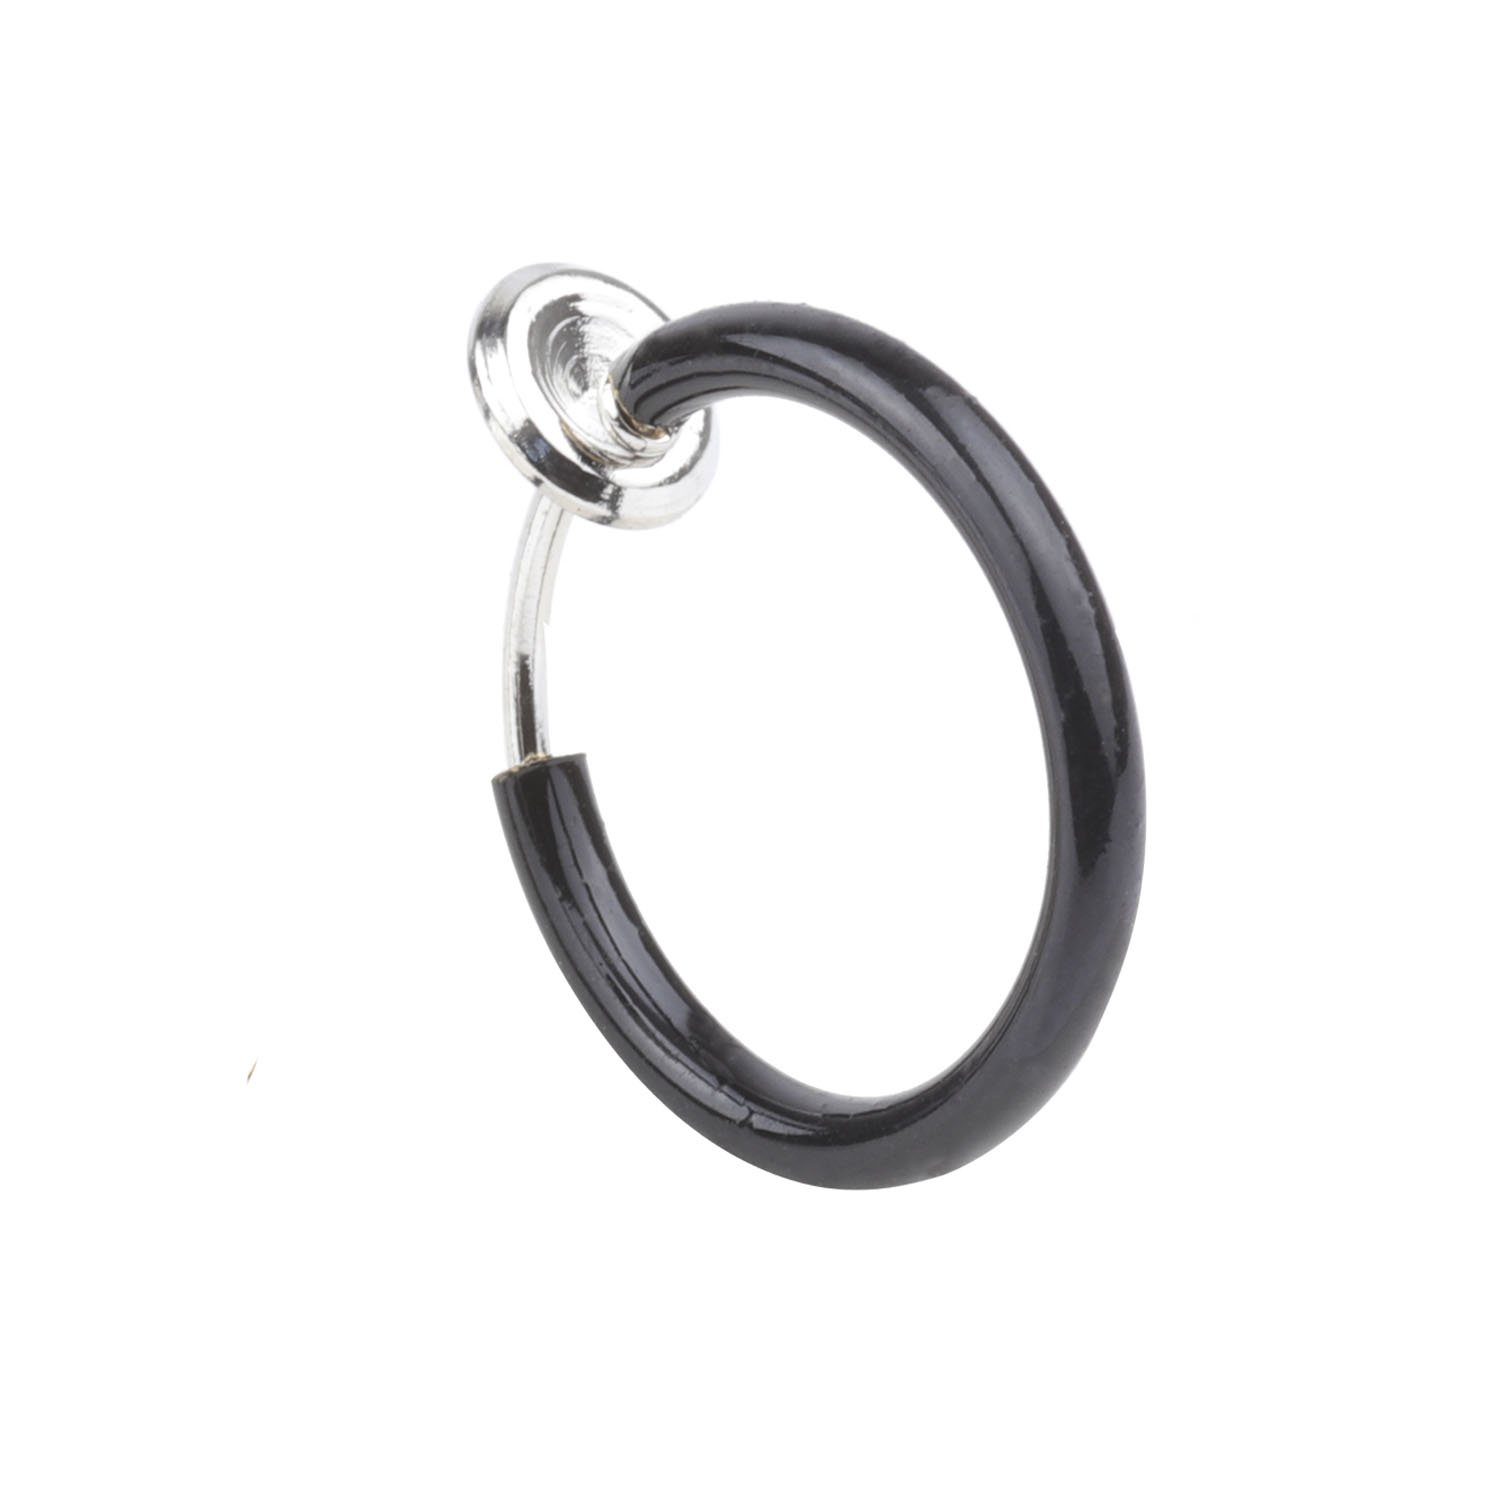 A+ 1Pcs 8mm Non Piercing Septum Piercing Spring Action Fake Body Jewelry Hoop Fashion Piercing Jewelry